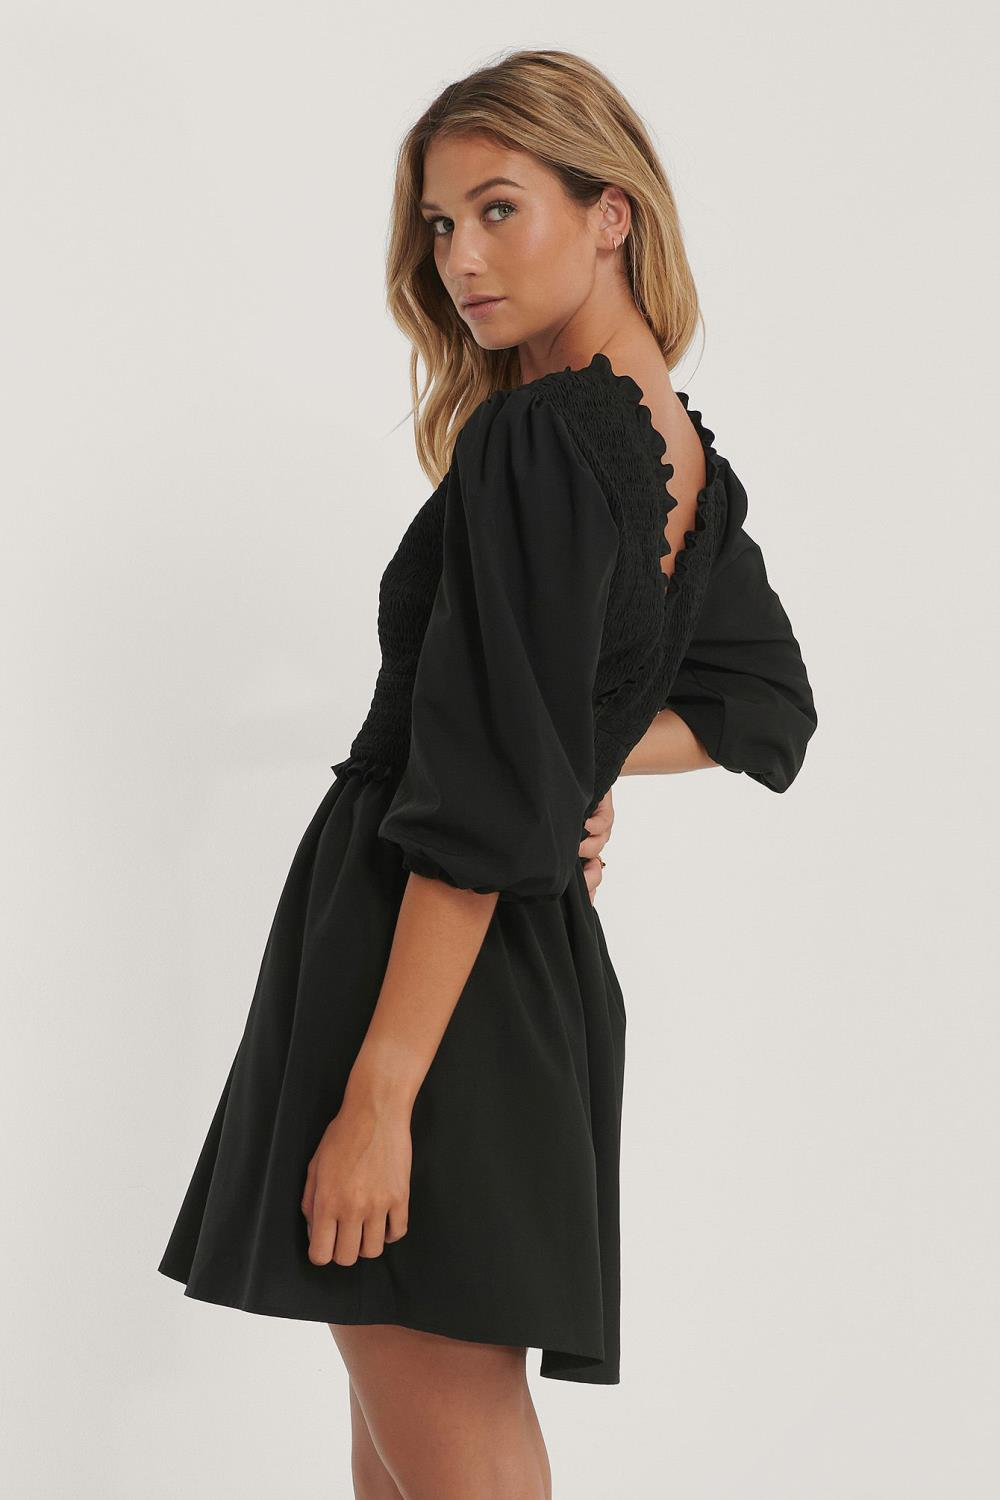 gallery-3708-for-1018-006781-black